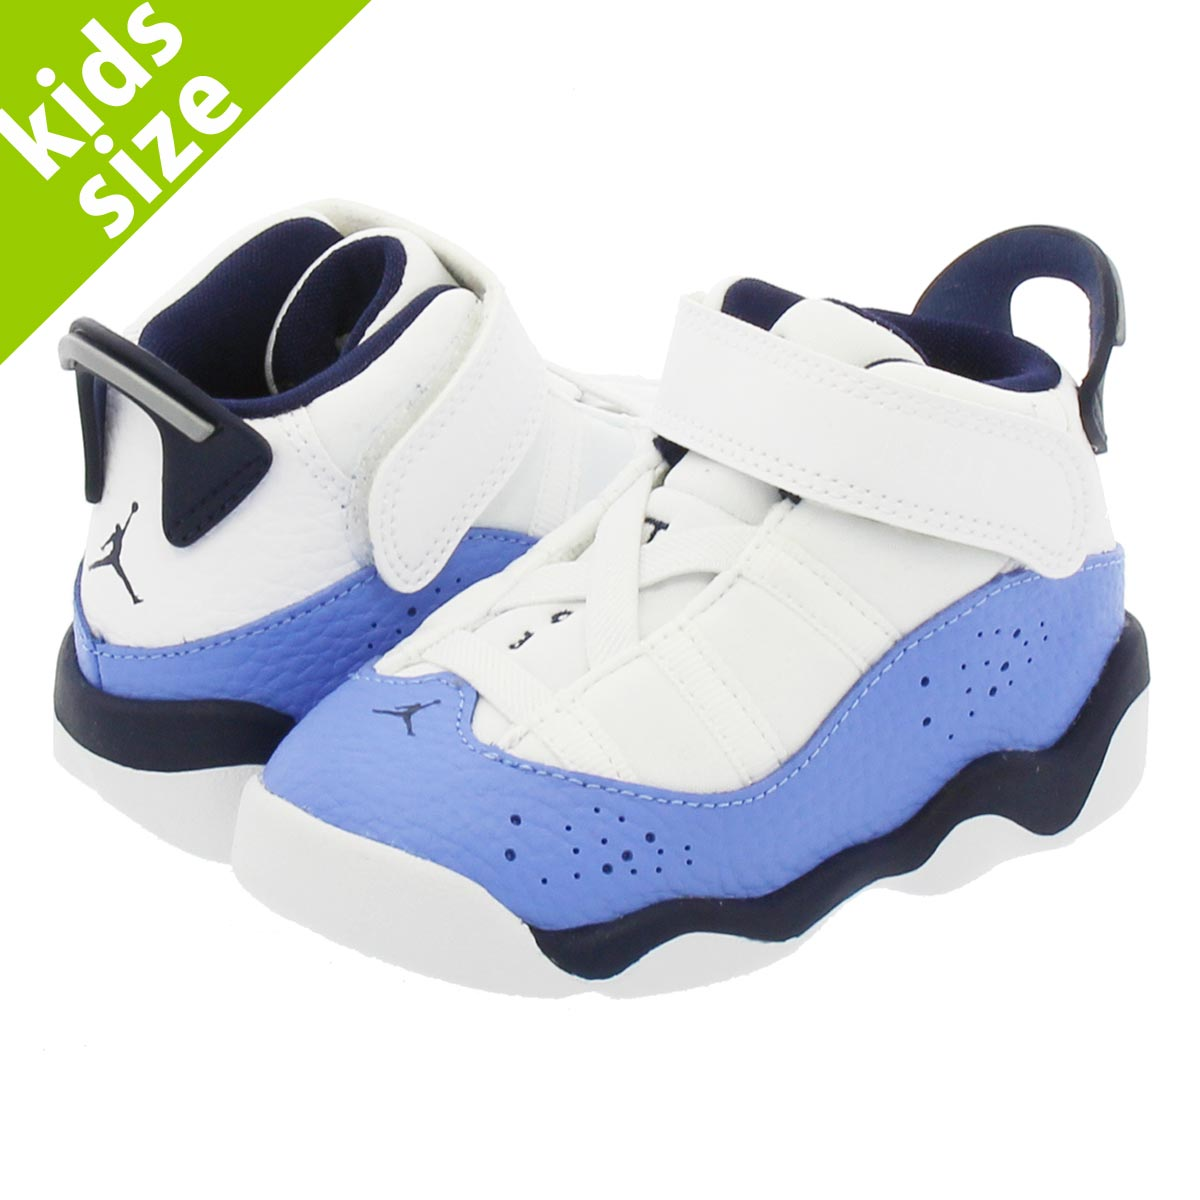 new style 20925 7f11f NIKE JORDAN 6 RINGS GT Nike Air Jordan 6 RINGS Co.,Ltd. GT WHITE/MIDNIGHT  NAVY/ROYAL BLUE